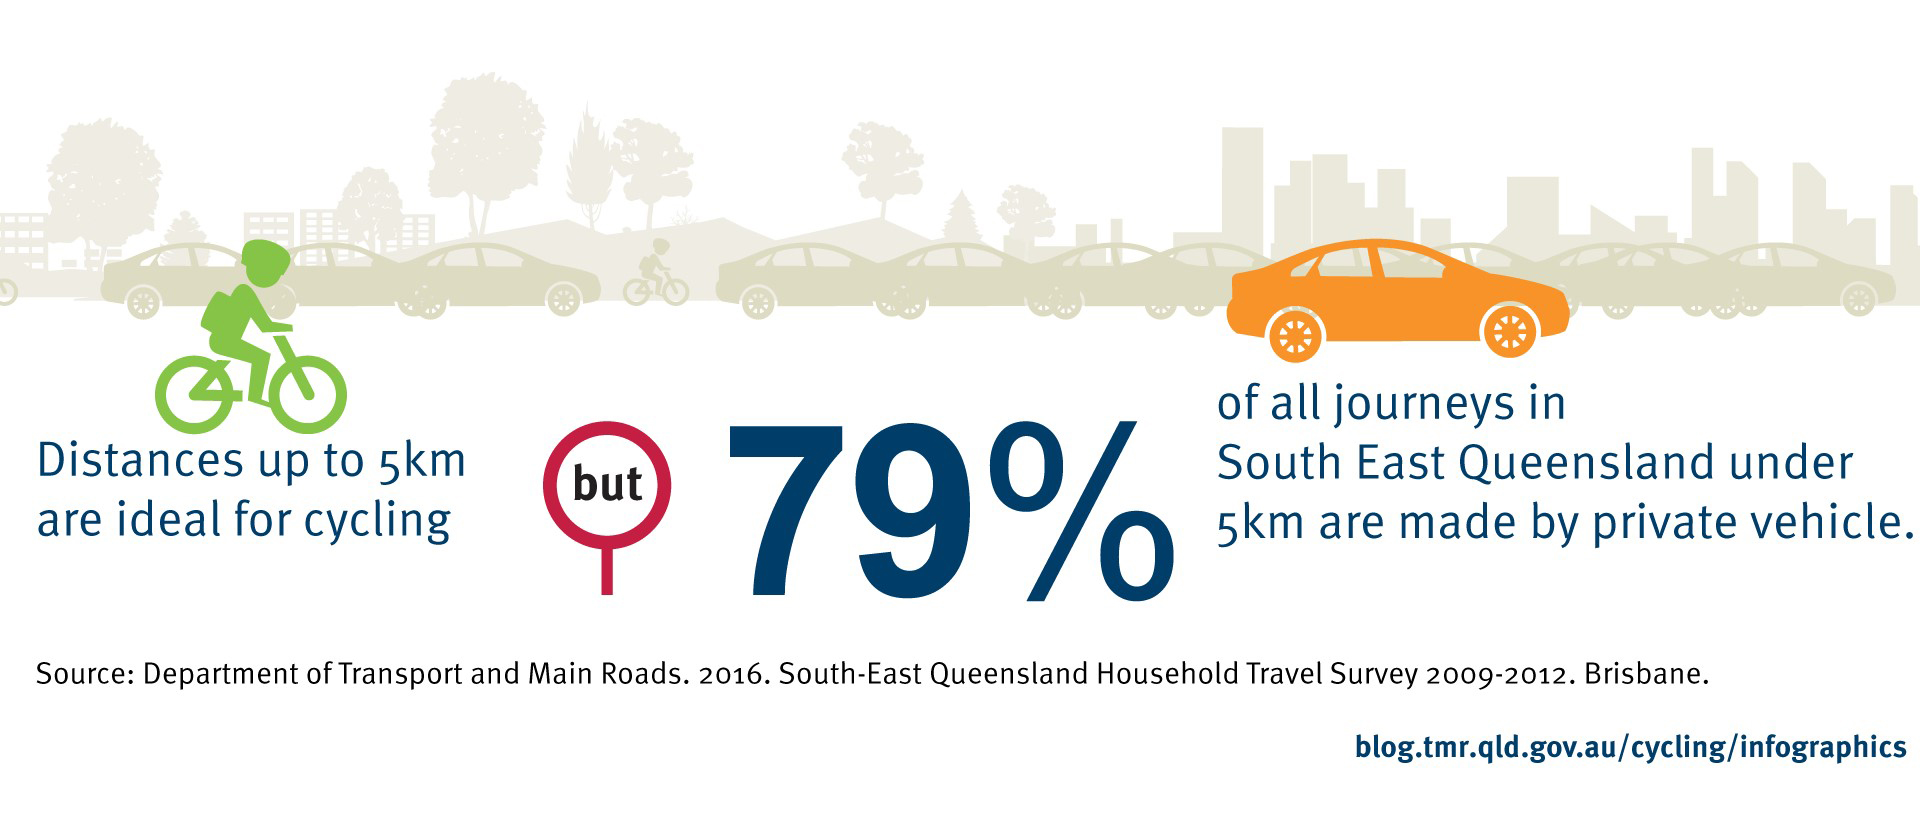 Distances up to 5km are ideal for cycling, but 79% of all journeys in South East Queensland are made by private vehicle (Department of Transport and Main Roads. 2016. Queensland Household Travel Survey 2009-2012. Brisbane).